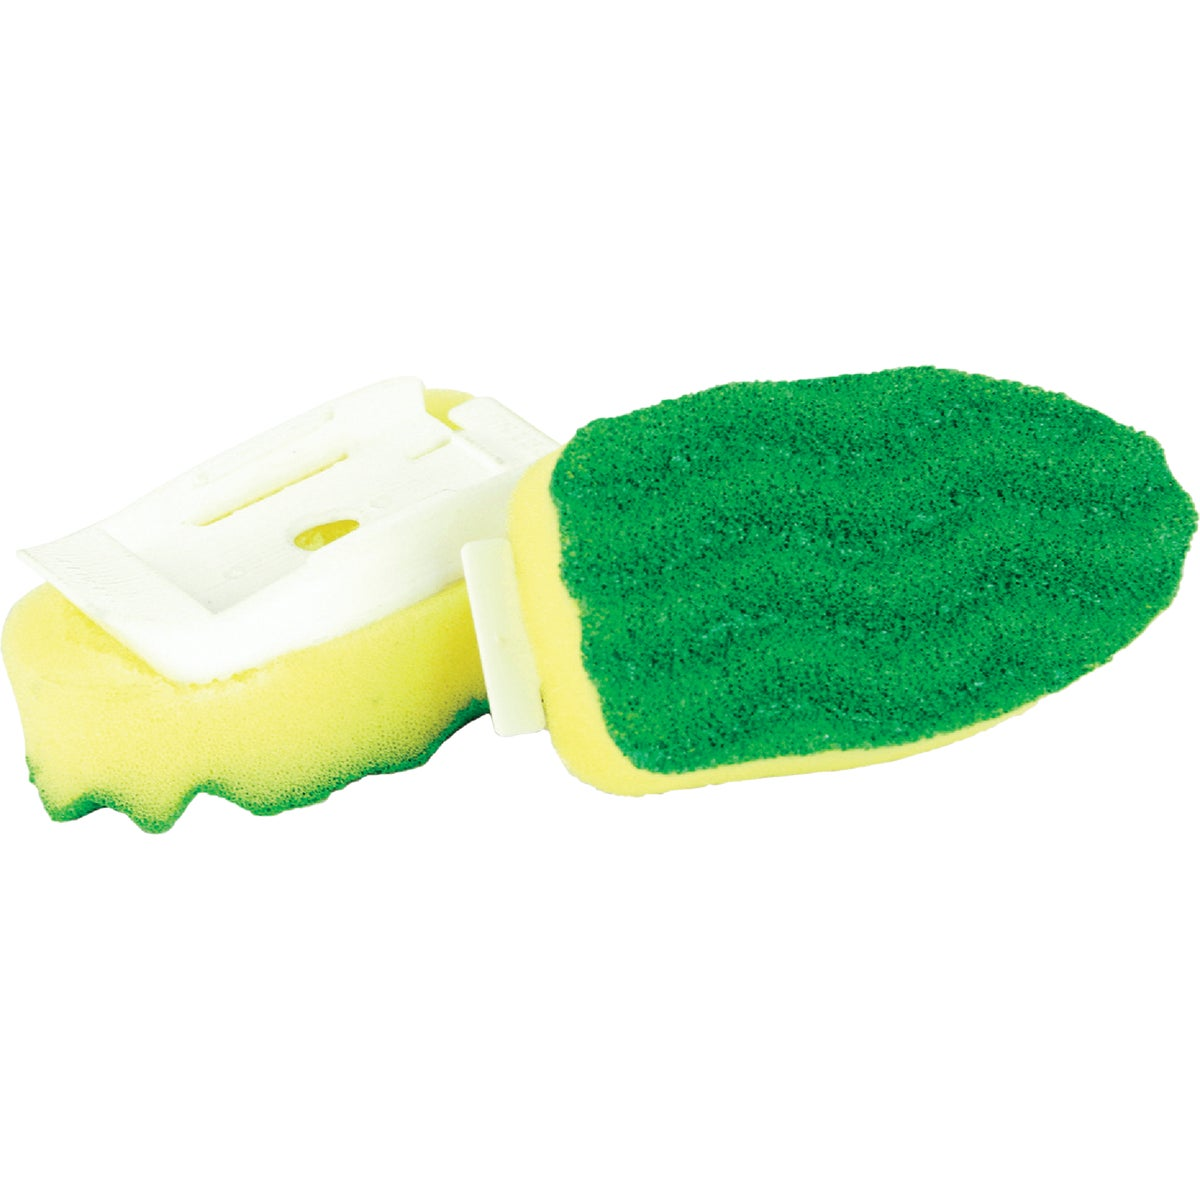 DISH SCRUB REFILLS - 49 by The Libman Company